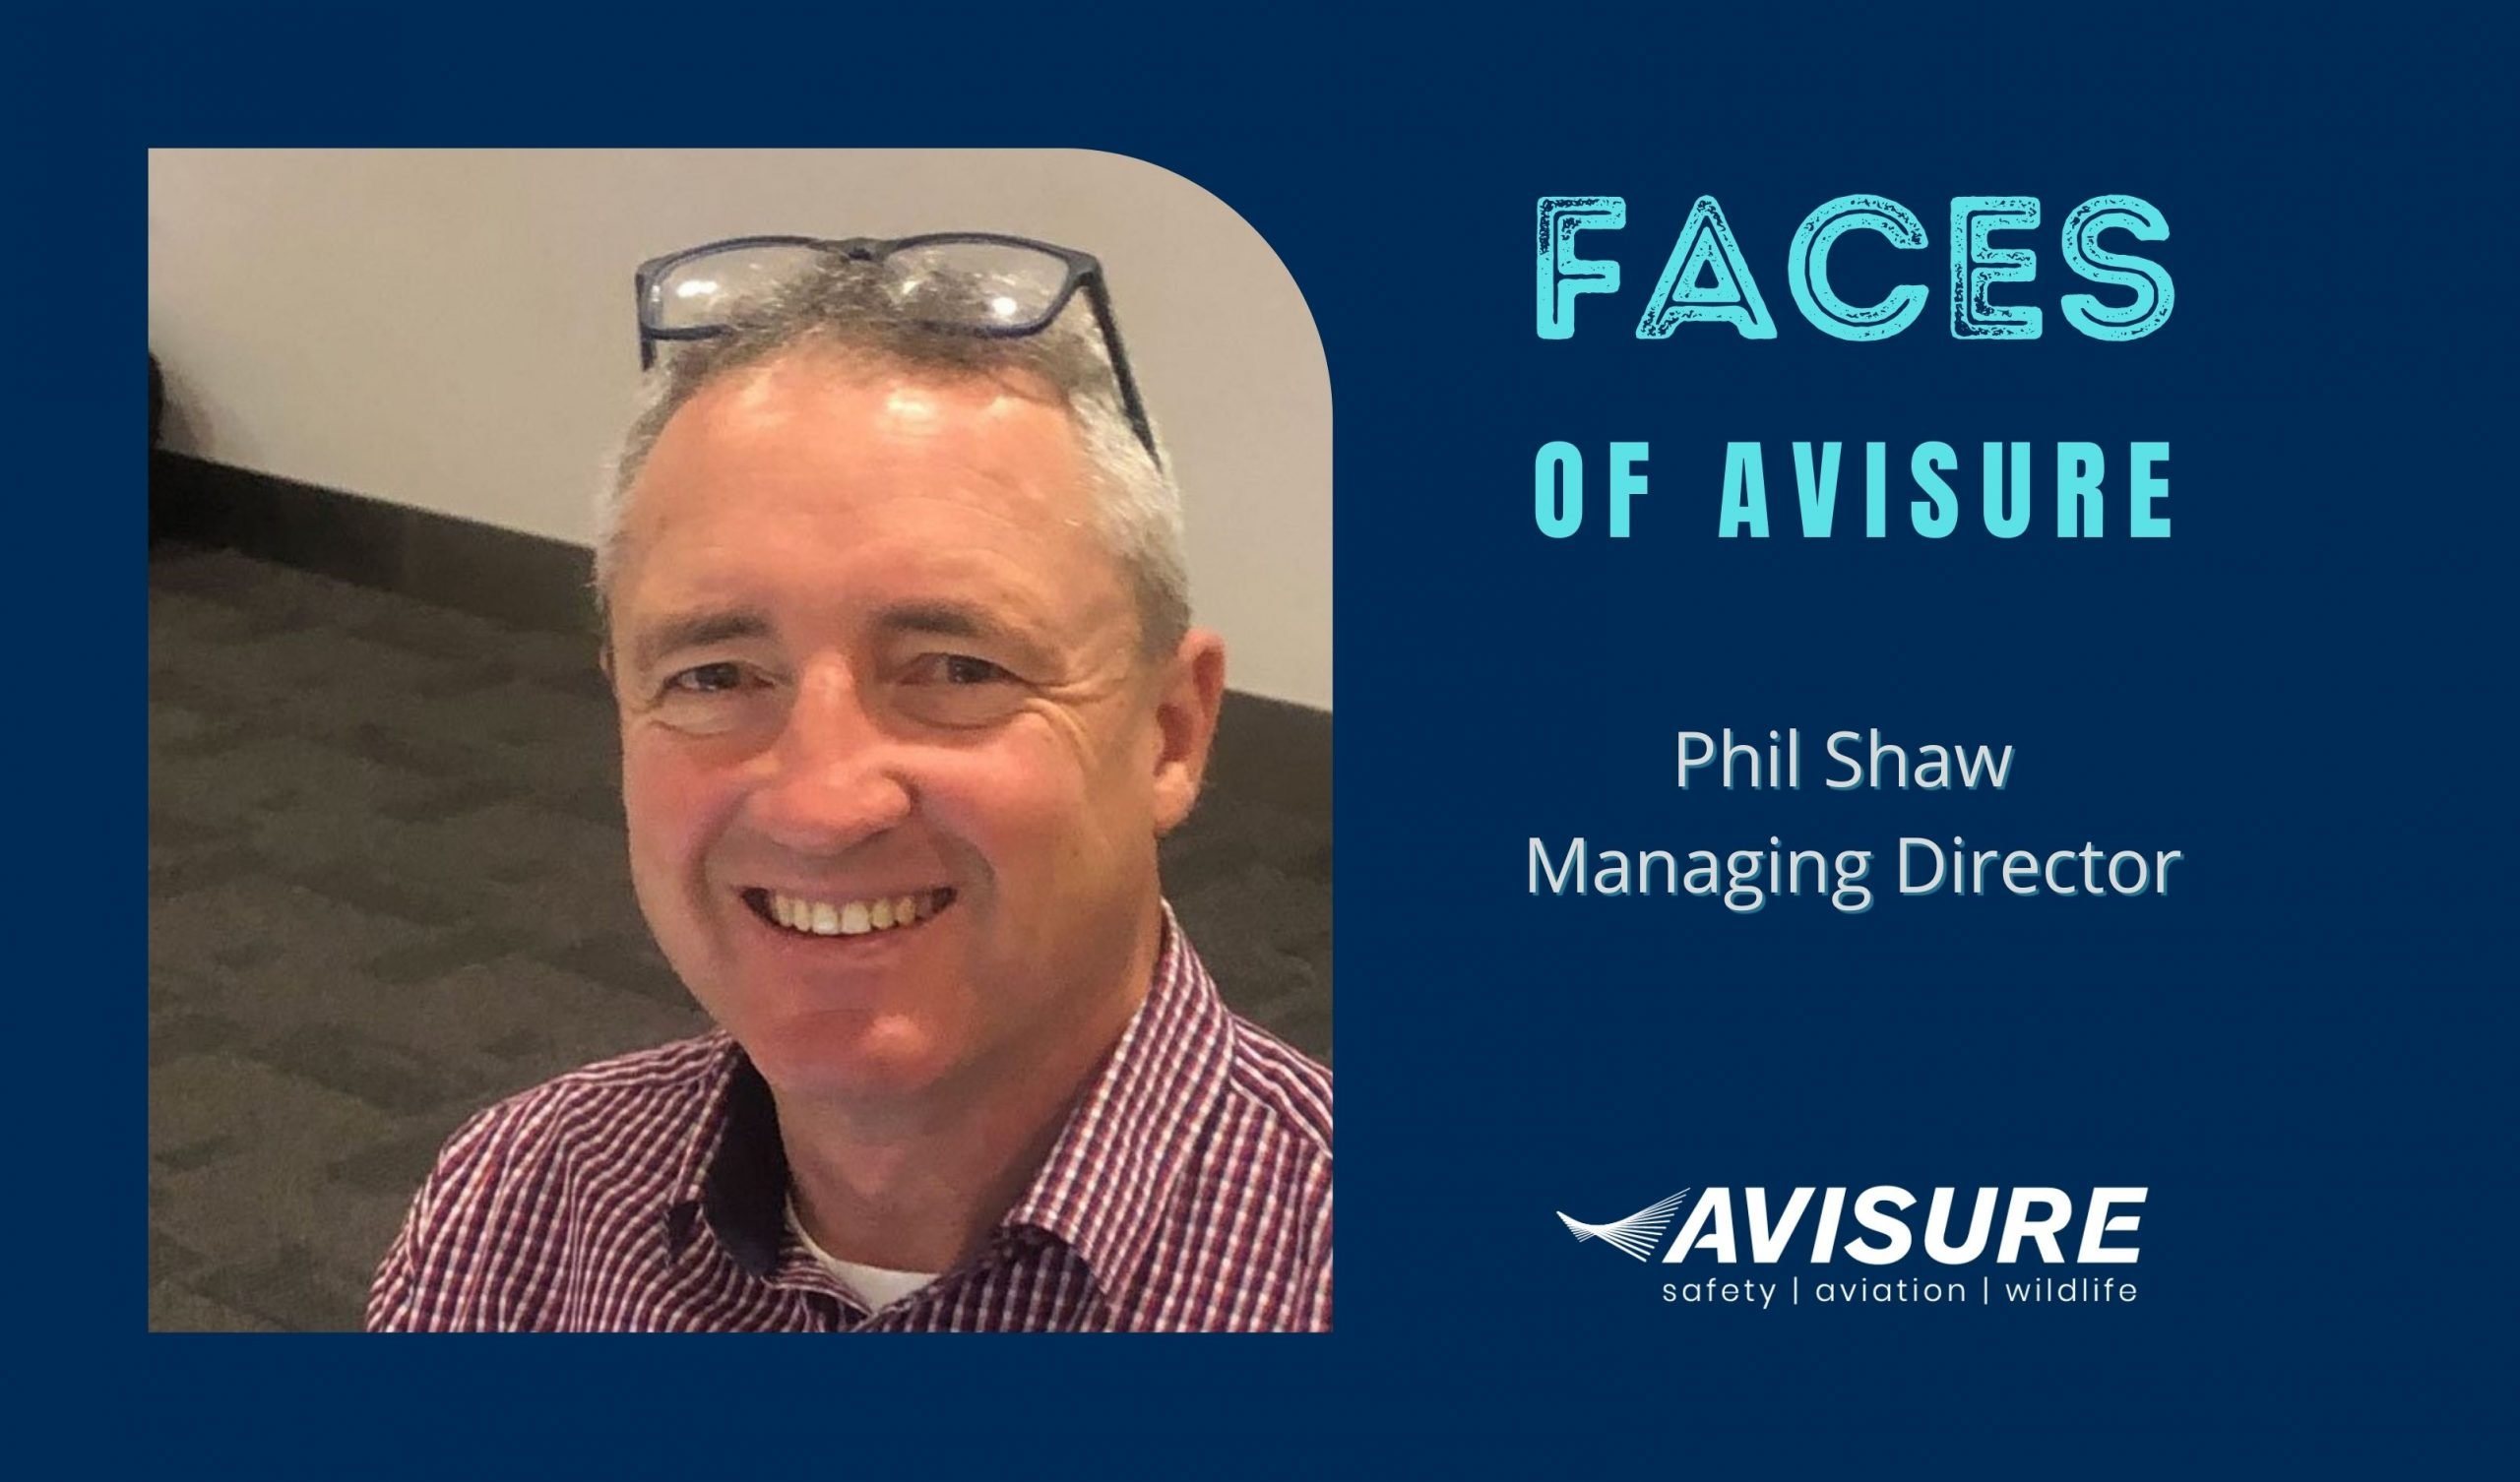 Faces of Avisure - Phil Shaw Managing Director and Founder of Avisure